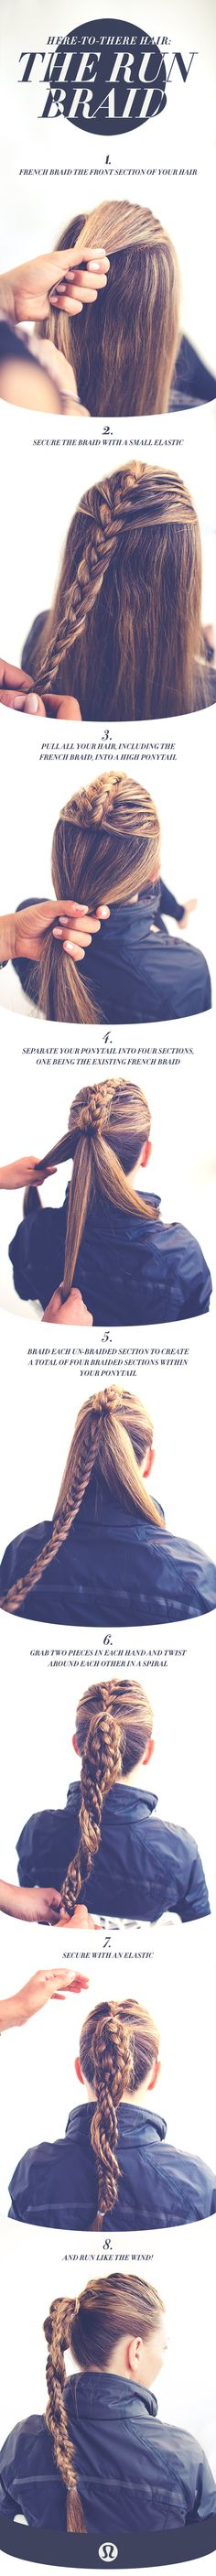 here-to-there hair: the run braid